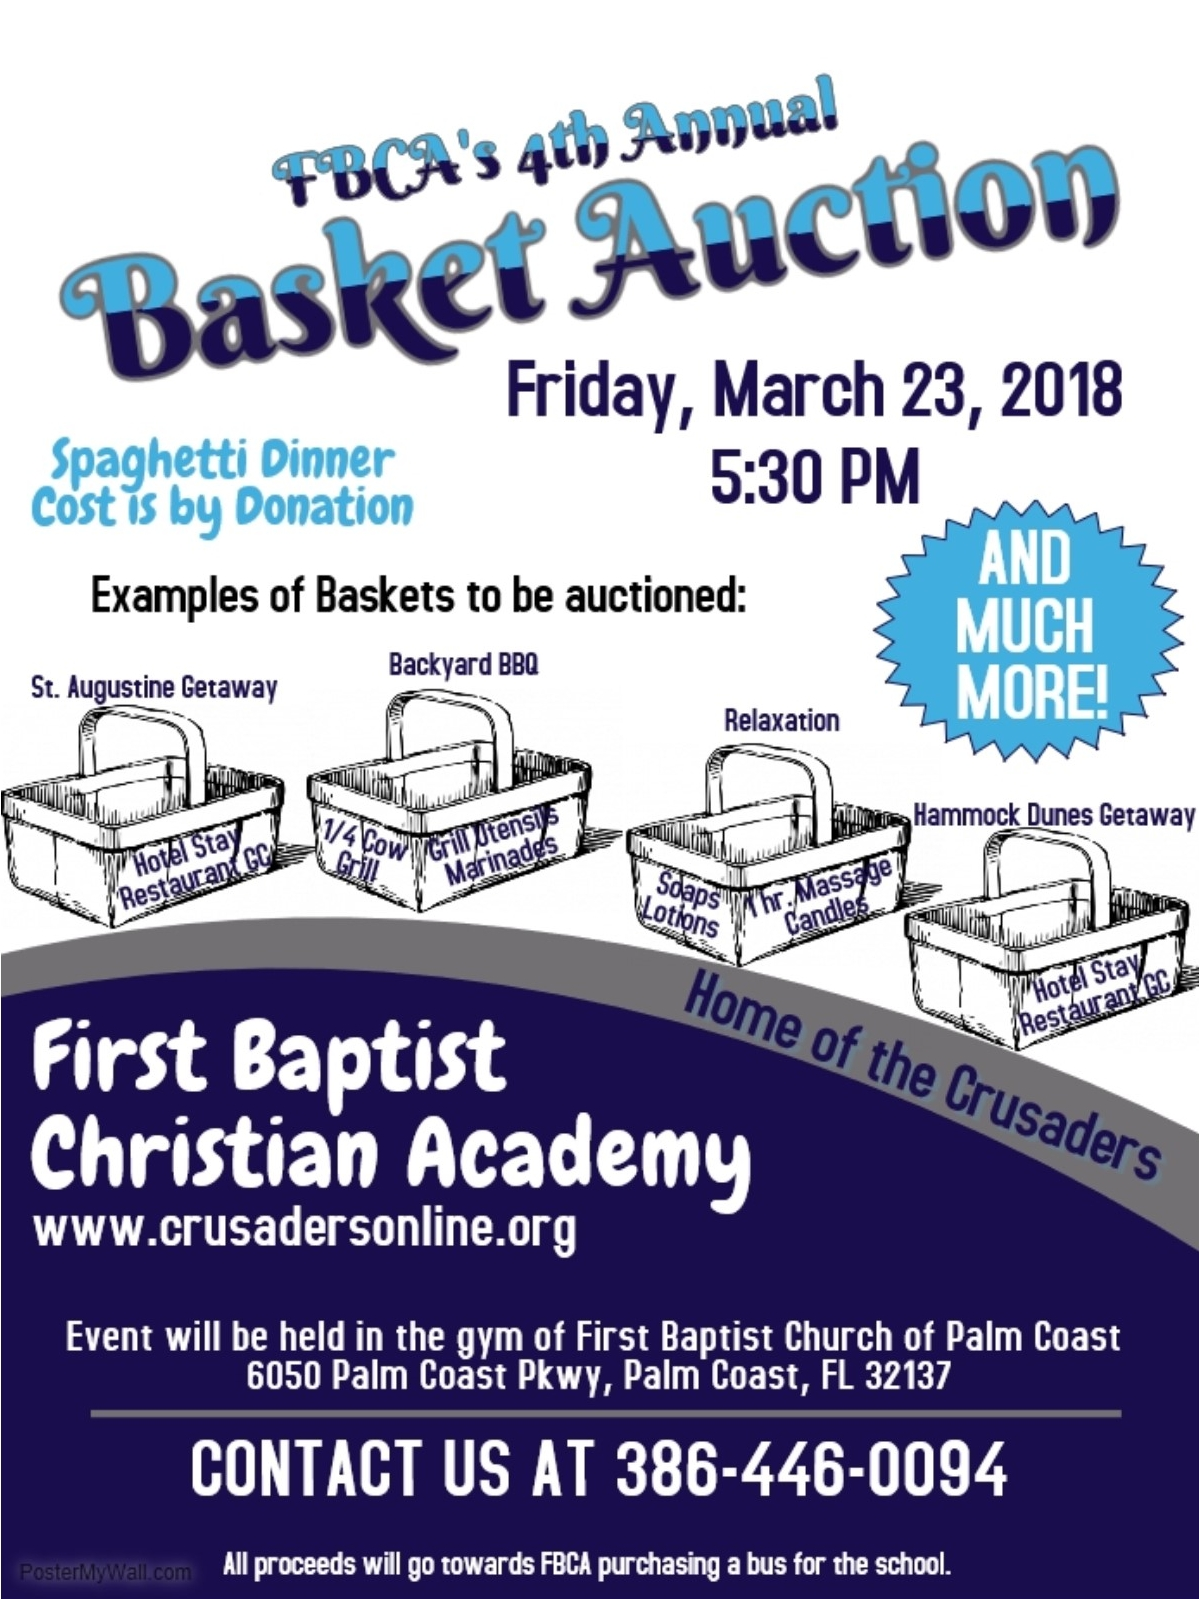 Basket Auction/Spaghetti Dinner